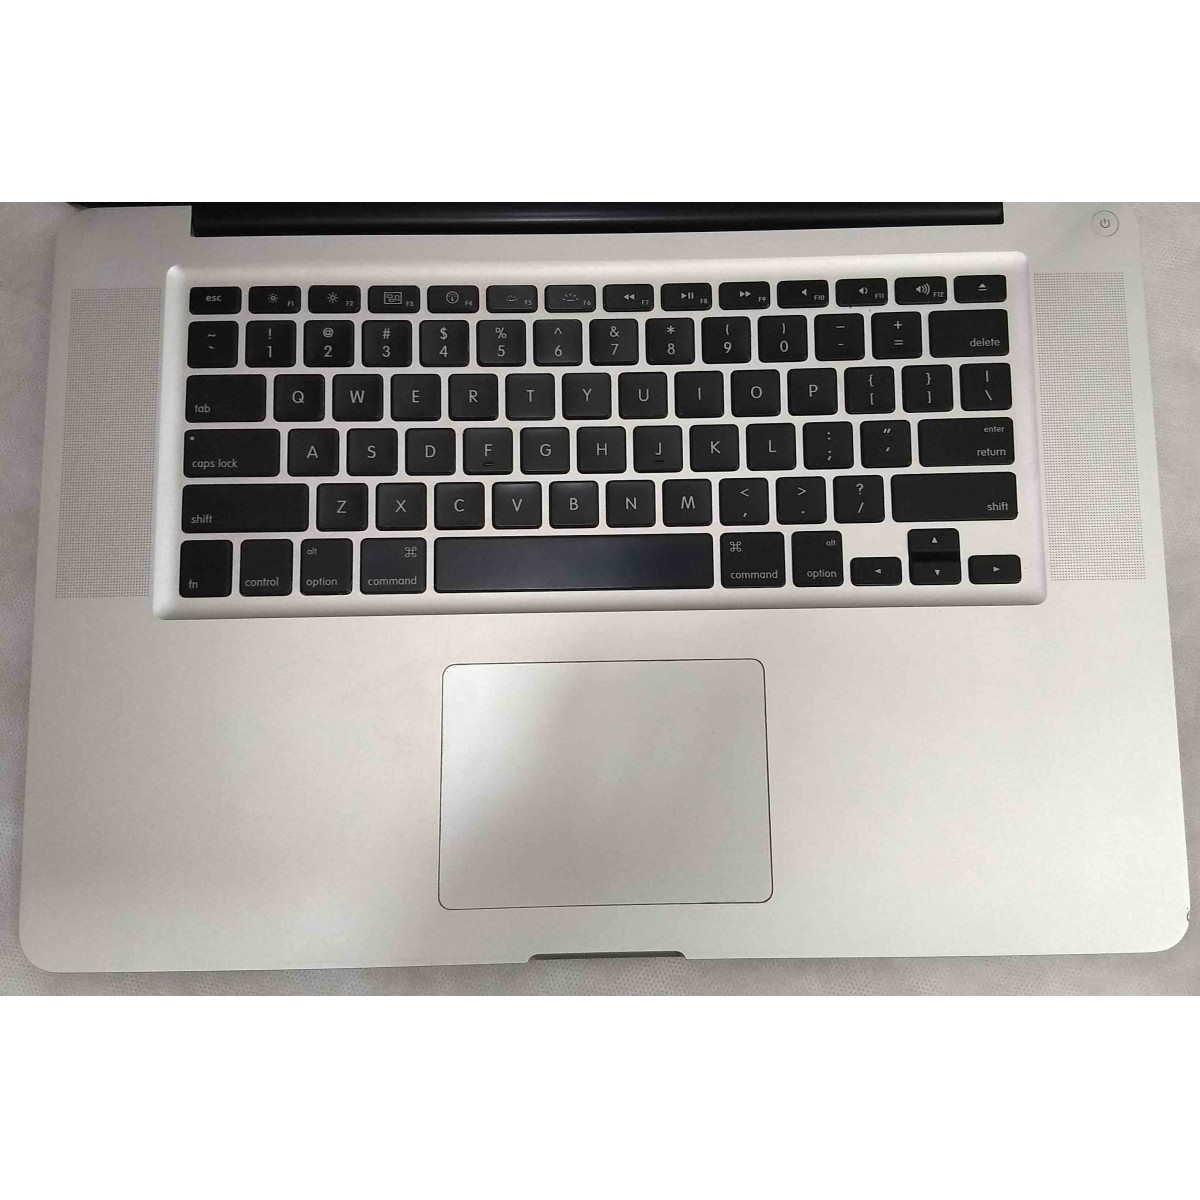 Macbook Pro MC372LL/A 15.4'' Core i5 2.53GHz 4GB HD-500GB |256MB - Dedicada